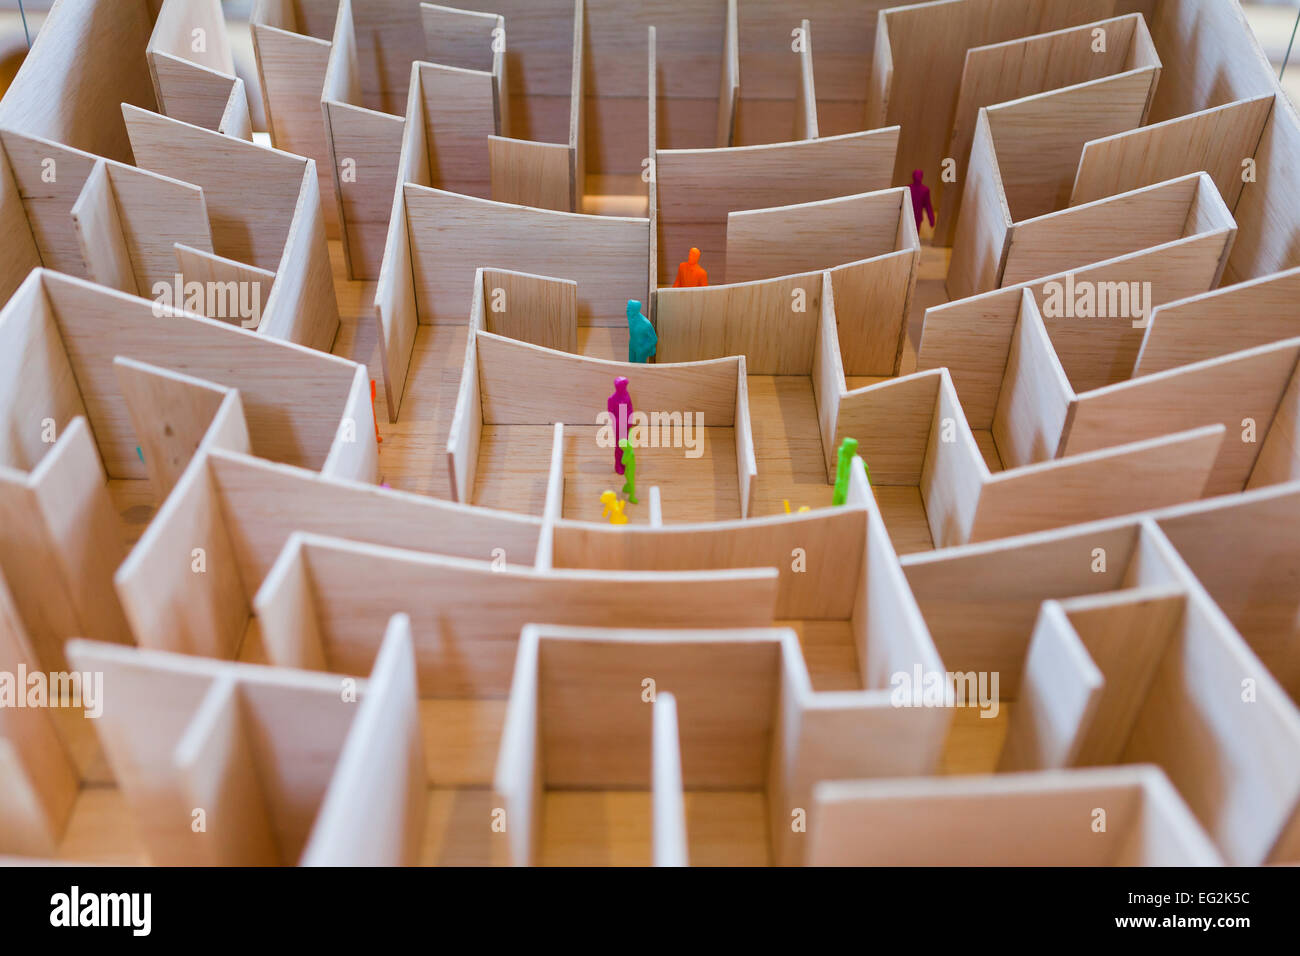 Miniature human figures in architectural model of maze - Stock Image